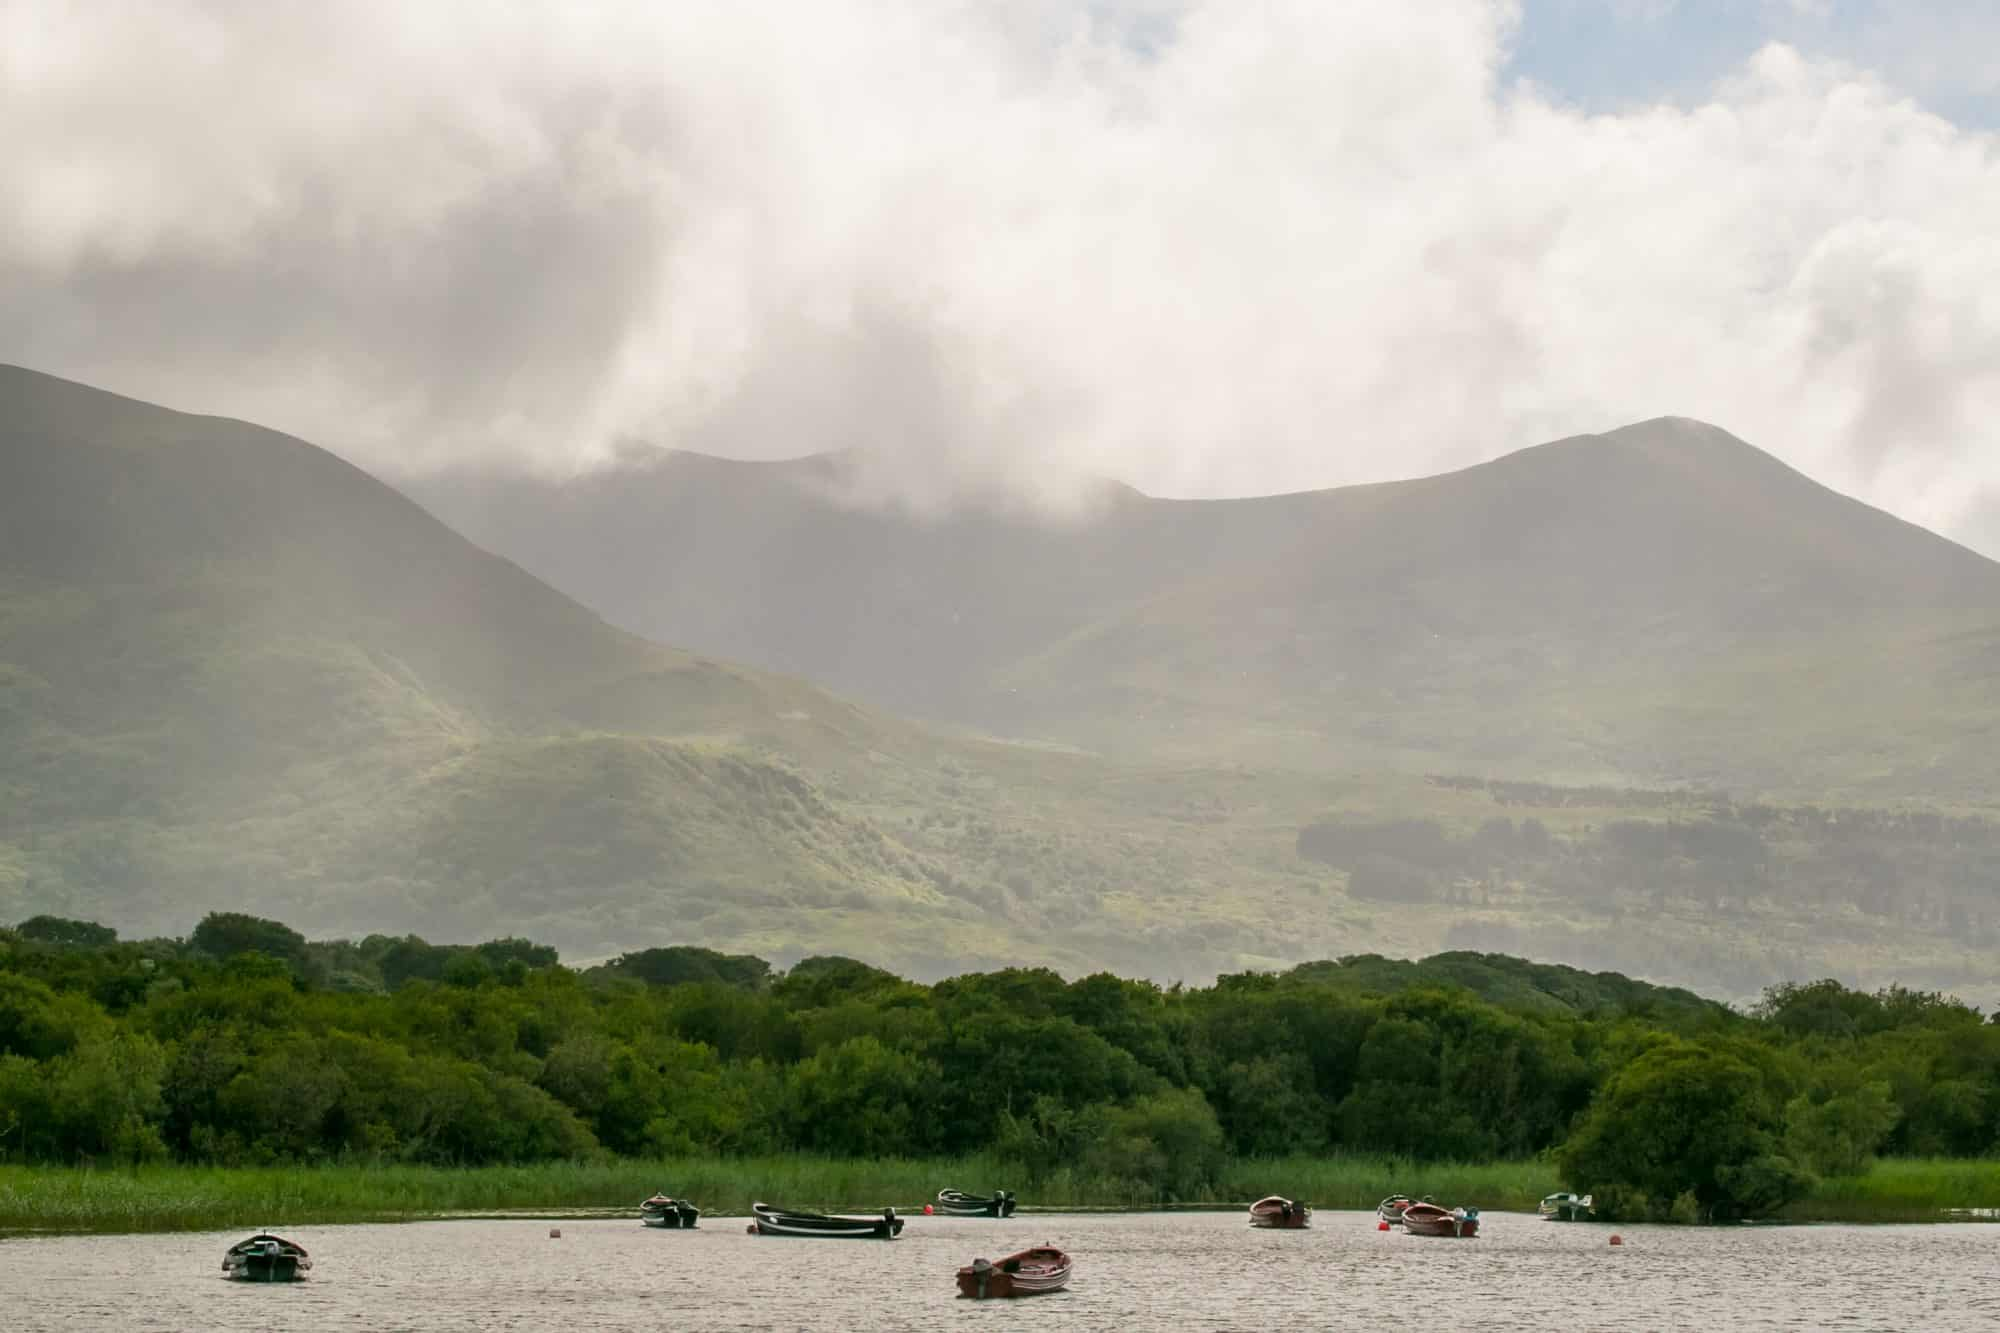 Boats on Loch Lein, Killarney Ireland